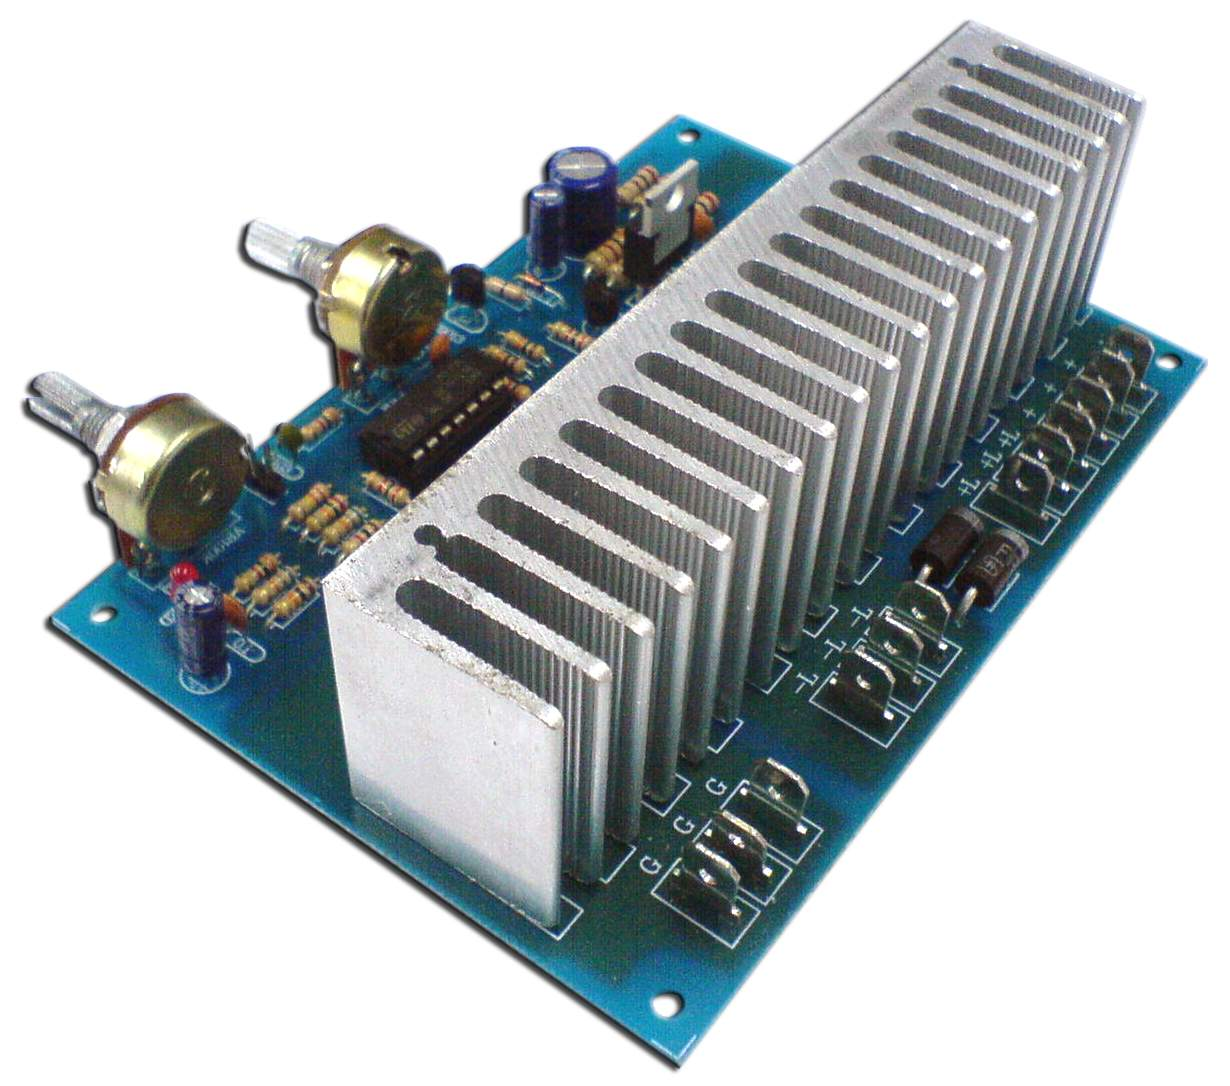 50a Dc Pwm Motor Speed Controller Assembled Electronic Kits In Addition To This Circuit We Also Recommend The Other Ckmx068 2